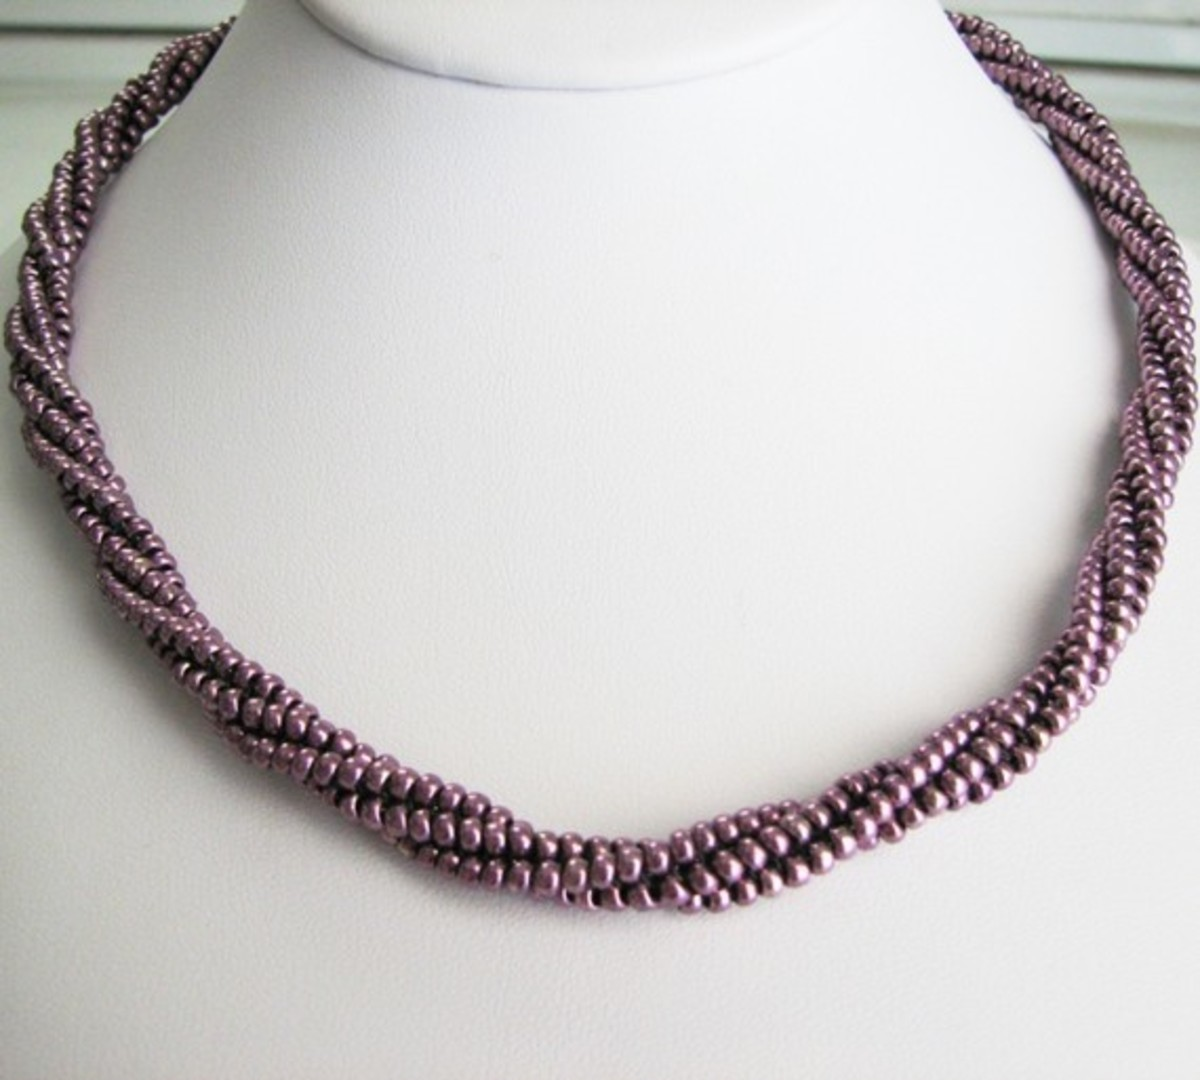 Beaded Rope Wrap in Eggplant: This piece can be wore as a necklace or wrapped as a bracelet.